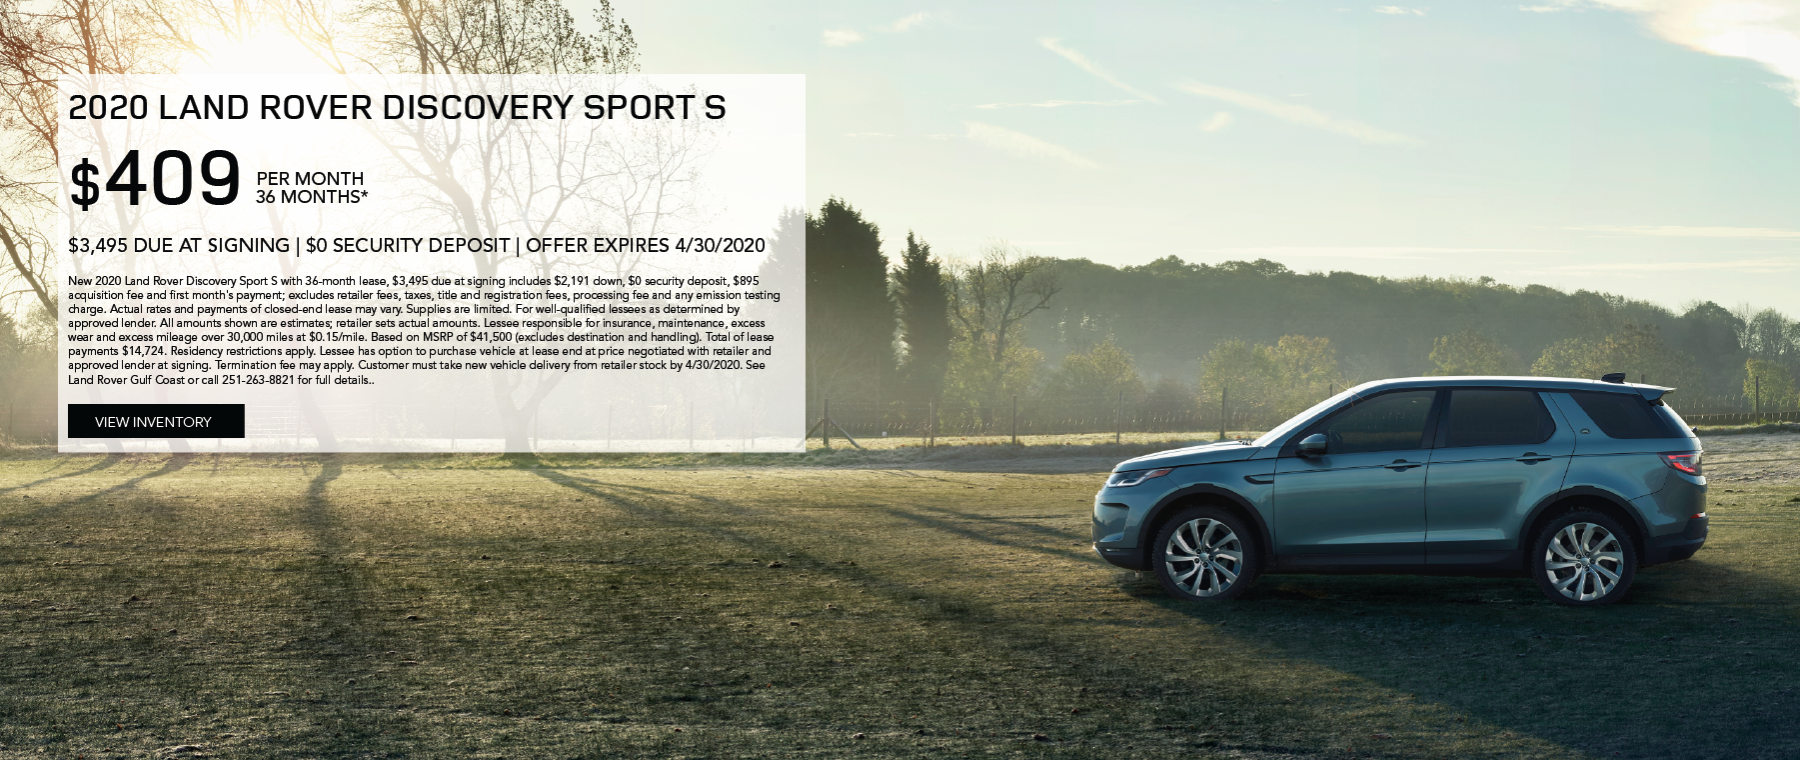 Grey 2020 LAND ROVER DISCOVERY SPORT on open field. Lease for $409/month for 36 months $3,495 Cash due at signing  New 2020 Land Rover Discovery Sport S with 36-month lease, $3,495 due at signing includes $2,191 down, $0 security deposit, $895 acquisition fee and first month's payment; excludes retailer fees, taxes, title and registration fees, processing fee and any emission testing charge. Actual rates and payments of closed-end lease may vary. Supplies are limited. For well-qualified lessees as determined by approved lender. All amounts shown are estimates; retailer sets actual amounts. Lessee responsible for insurance, maintenance, excess wear and excess mileage over 30,000 miles at $0.15/mile. Based on MSRP of $41,500 (excludes destination and handling). Total of lease payments $14,724. Residency restrictions apply. Lessee has option to purchase vehicle at lease end at price negotiated with retailer and approved lender at signing. Termination fee may apply. Customer must take new vehicle delivery from retailer stock by 4/30/2020. See Land Rover Gulf Coast or call 251-263-8821 for full details. Click to view inventory.